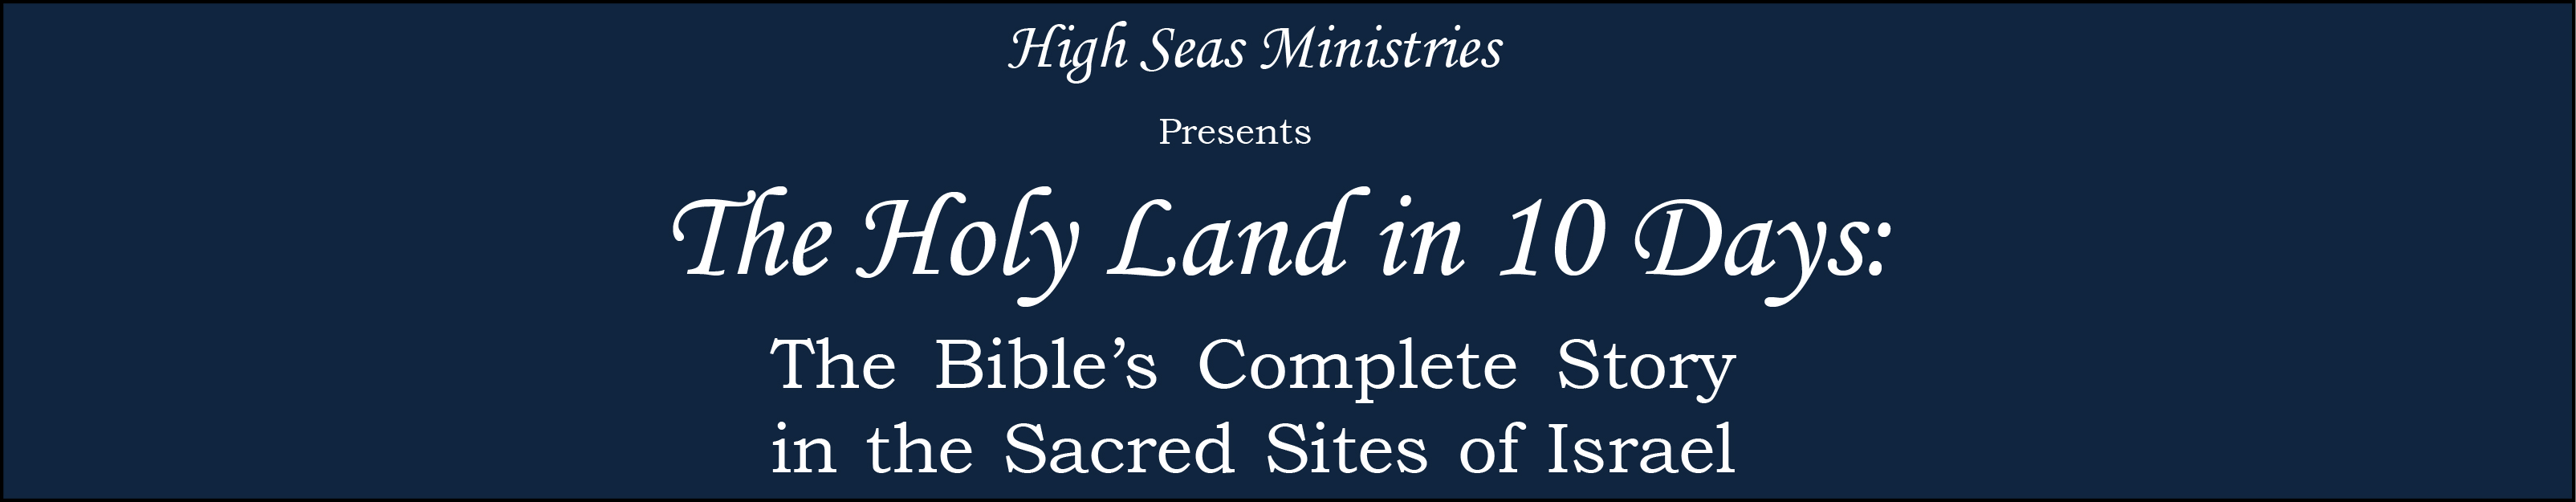 """The Holy Land in 10 Days"" with High Seas Ministries"